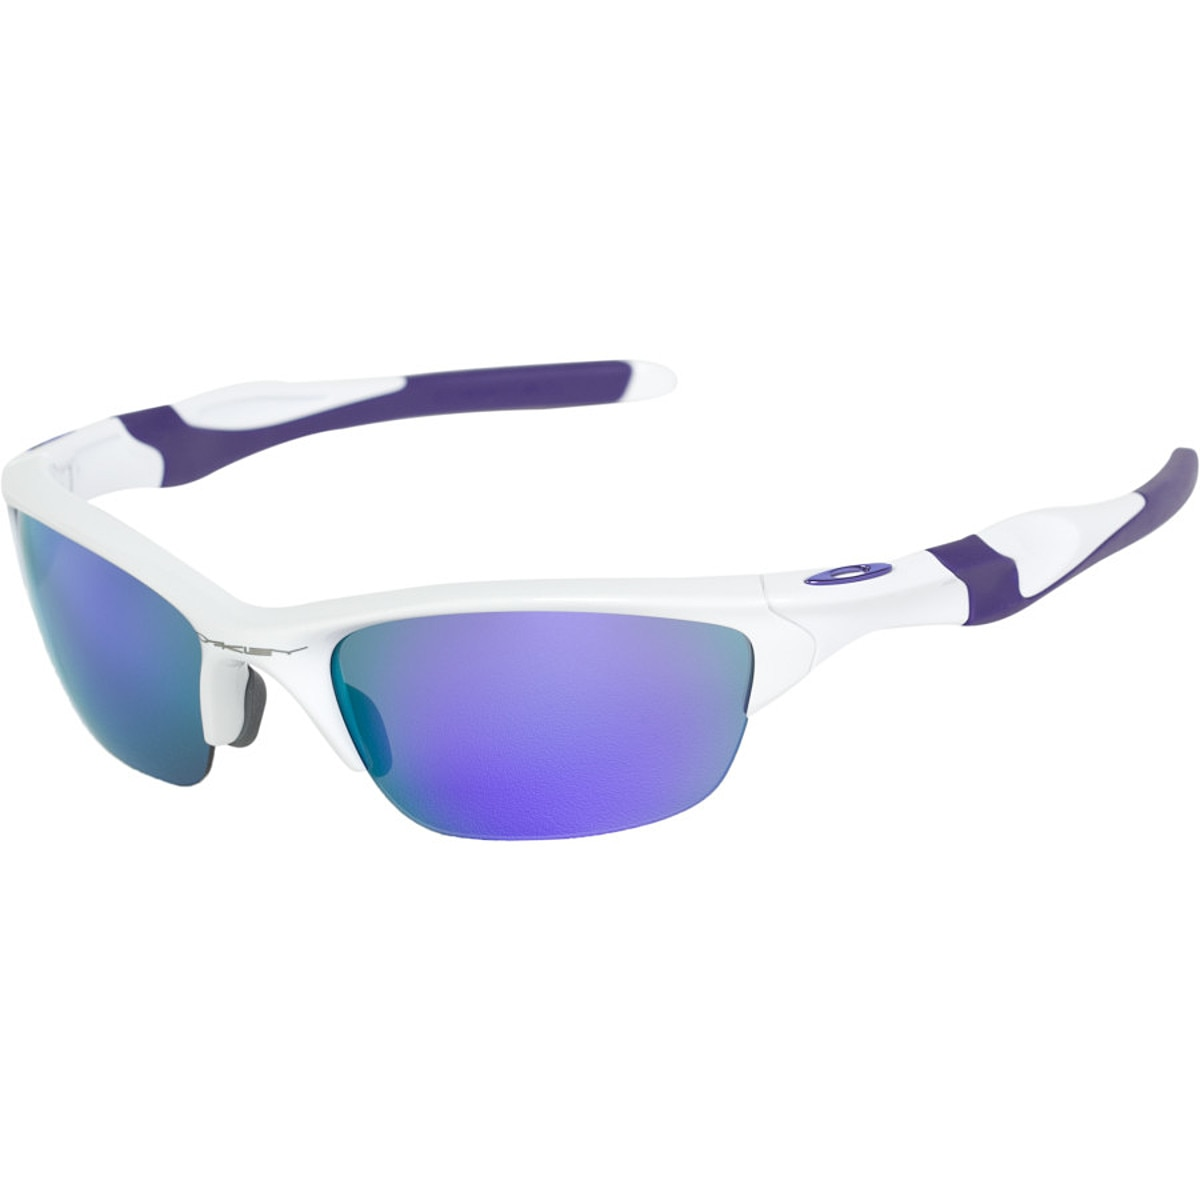 blue and silver oakley sunglasses  oakley half jacket 2.0 sunglasses